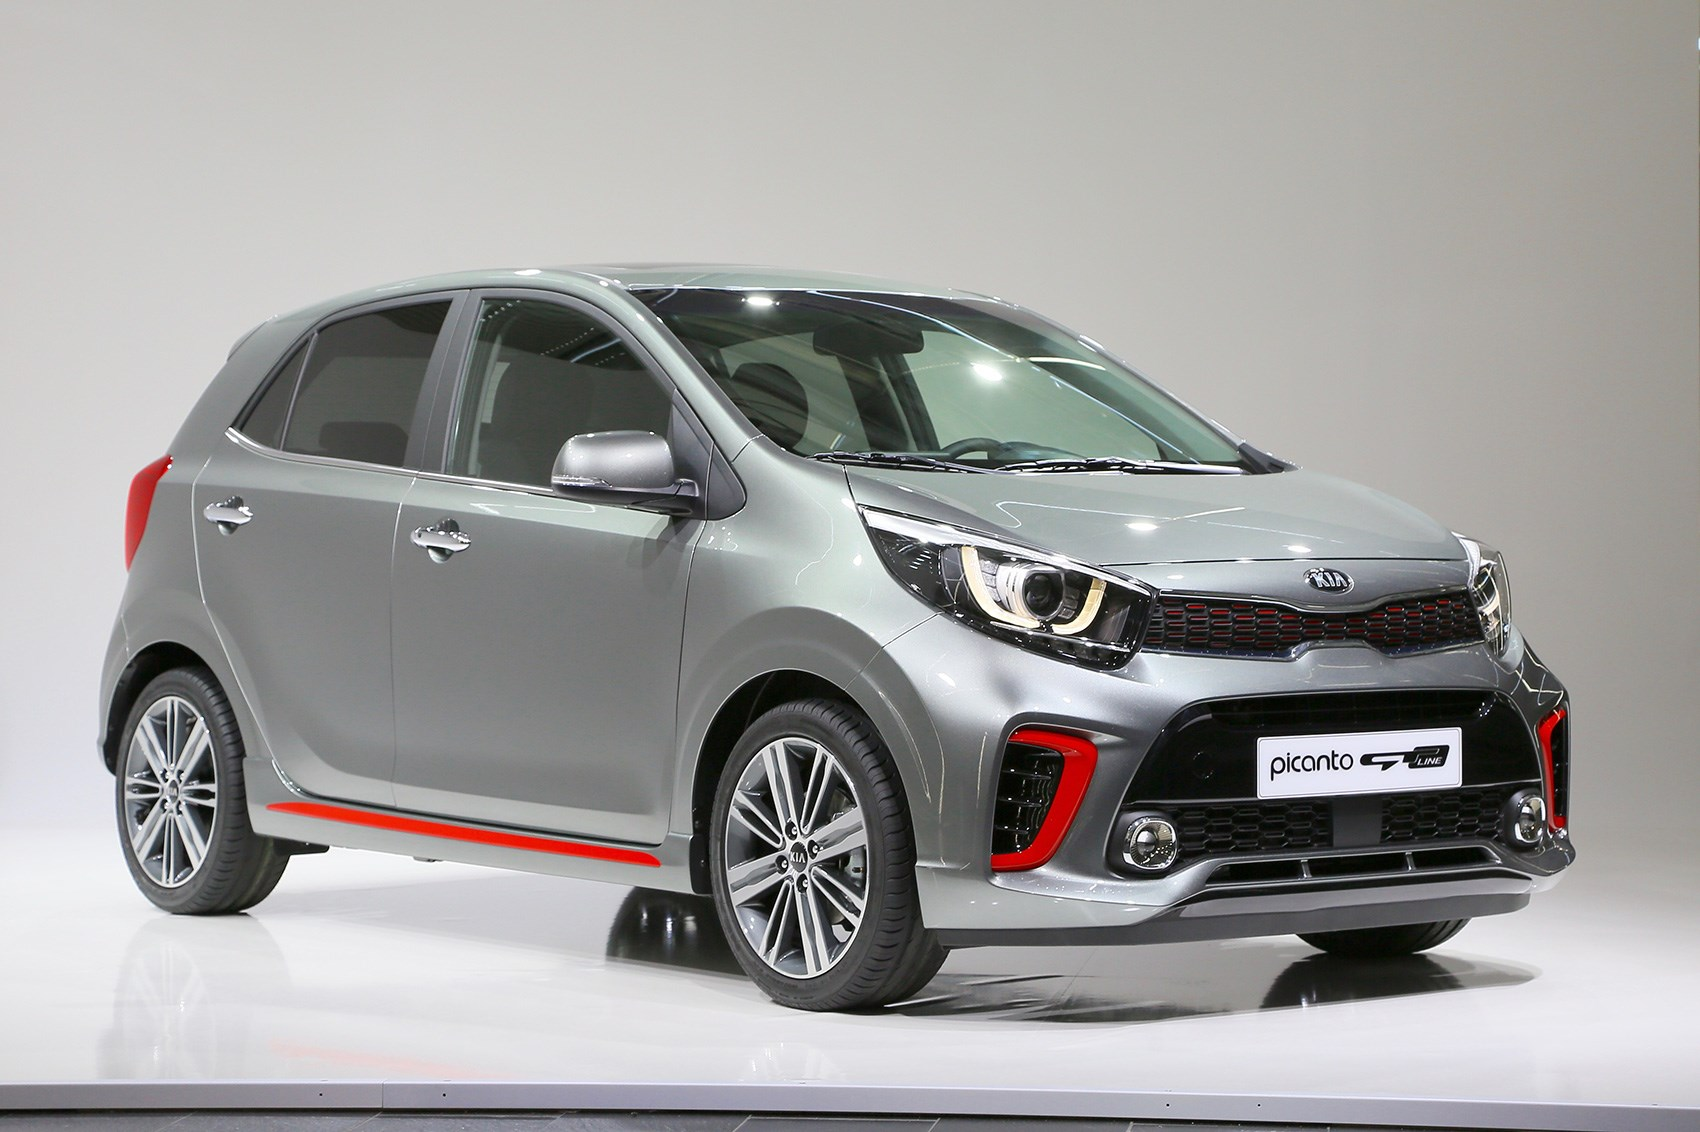 new kia picanto v3 0 meet korea s slickest city car yet the financial gazette. Black Bedroom Furniture Sets. Home Design Ideas